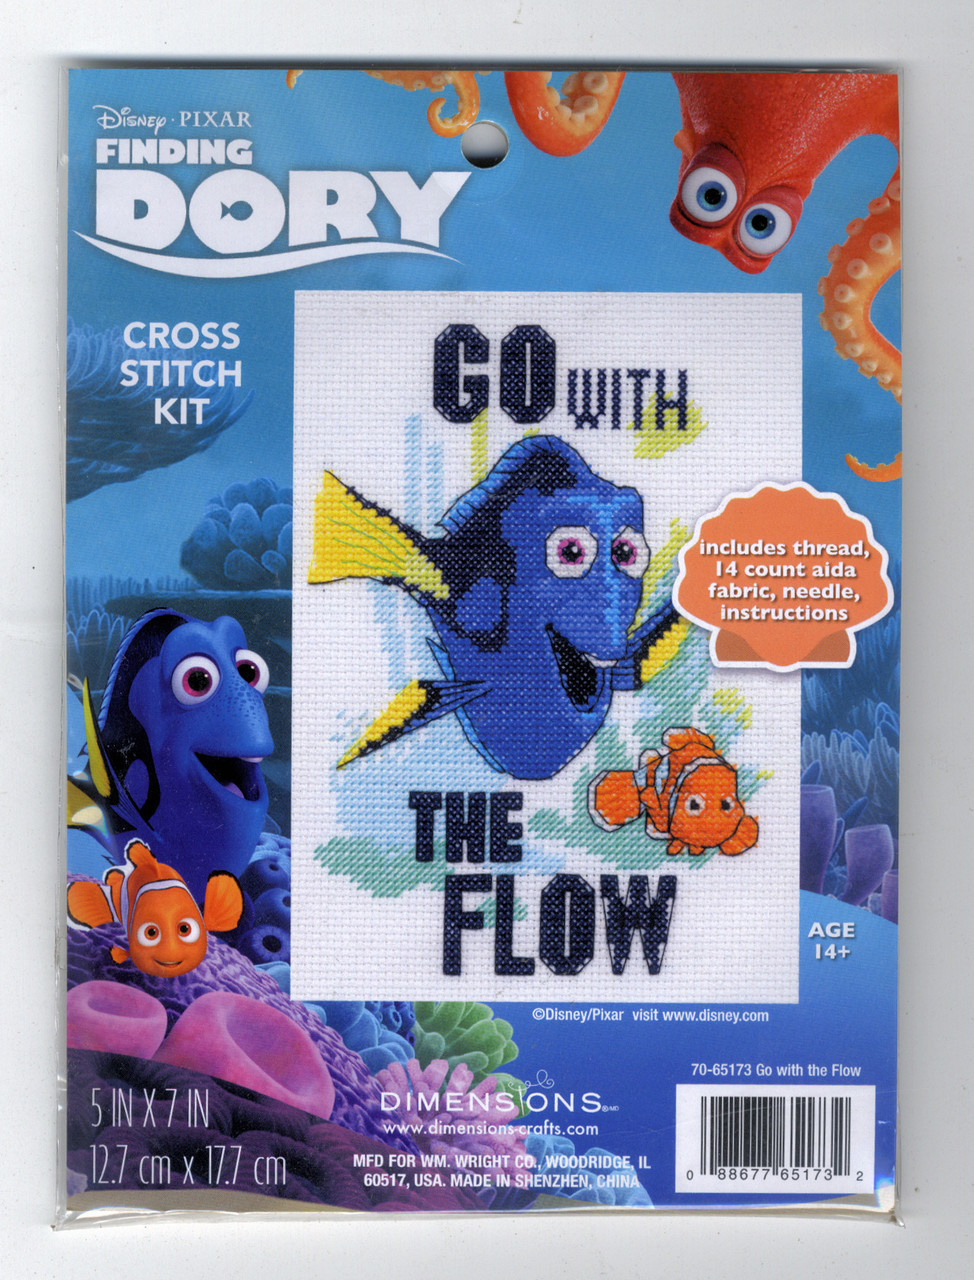 Dimensions - Disney Finding Dory Go with the Flow